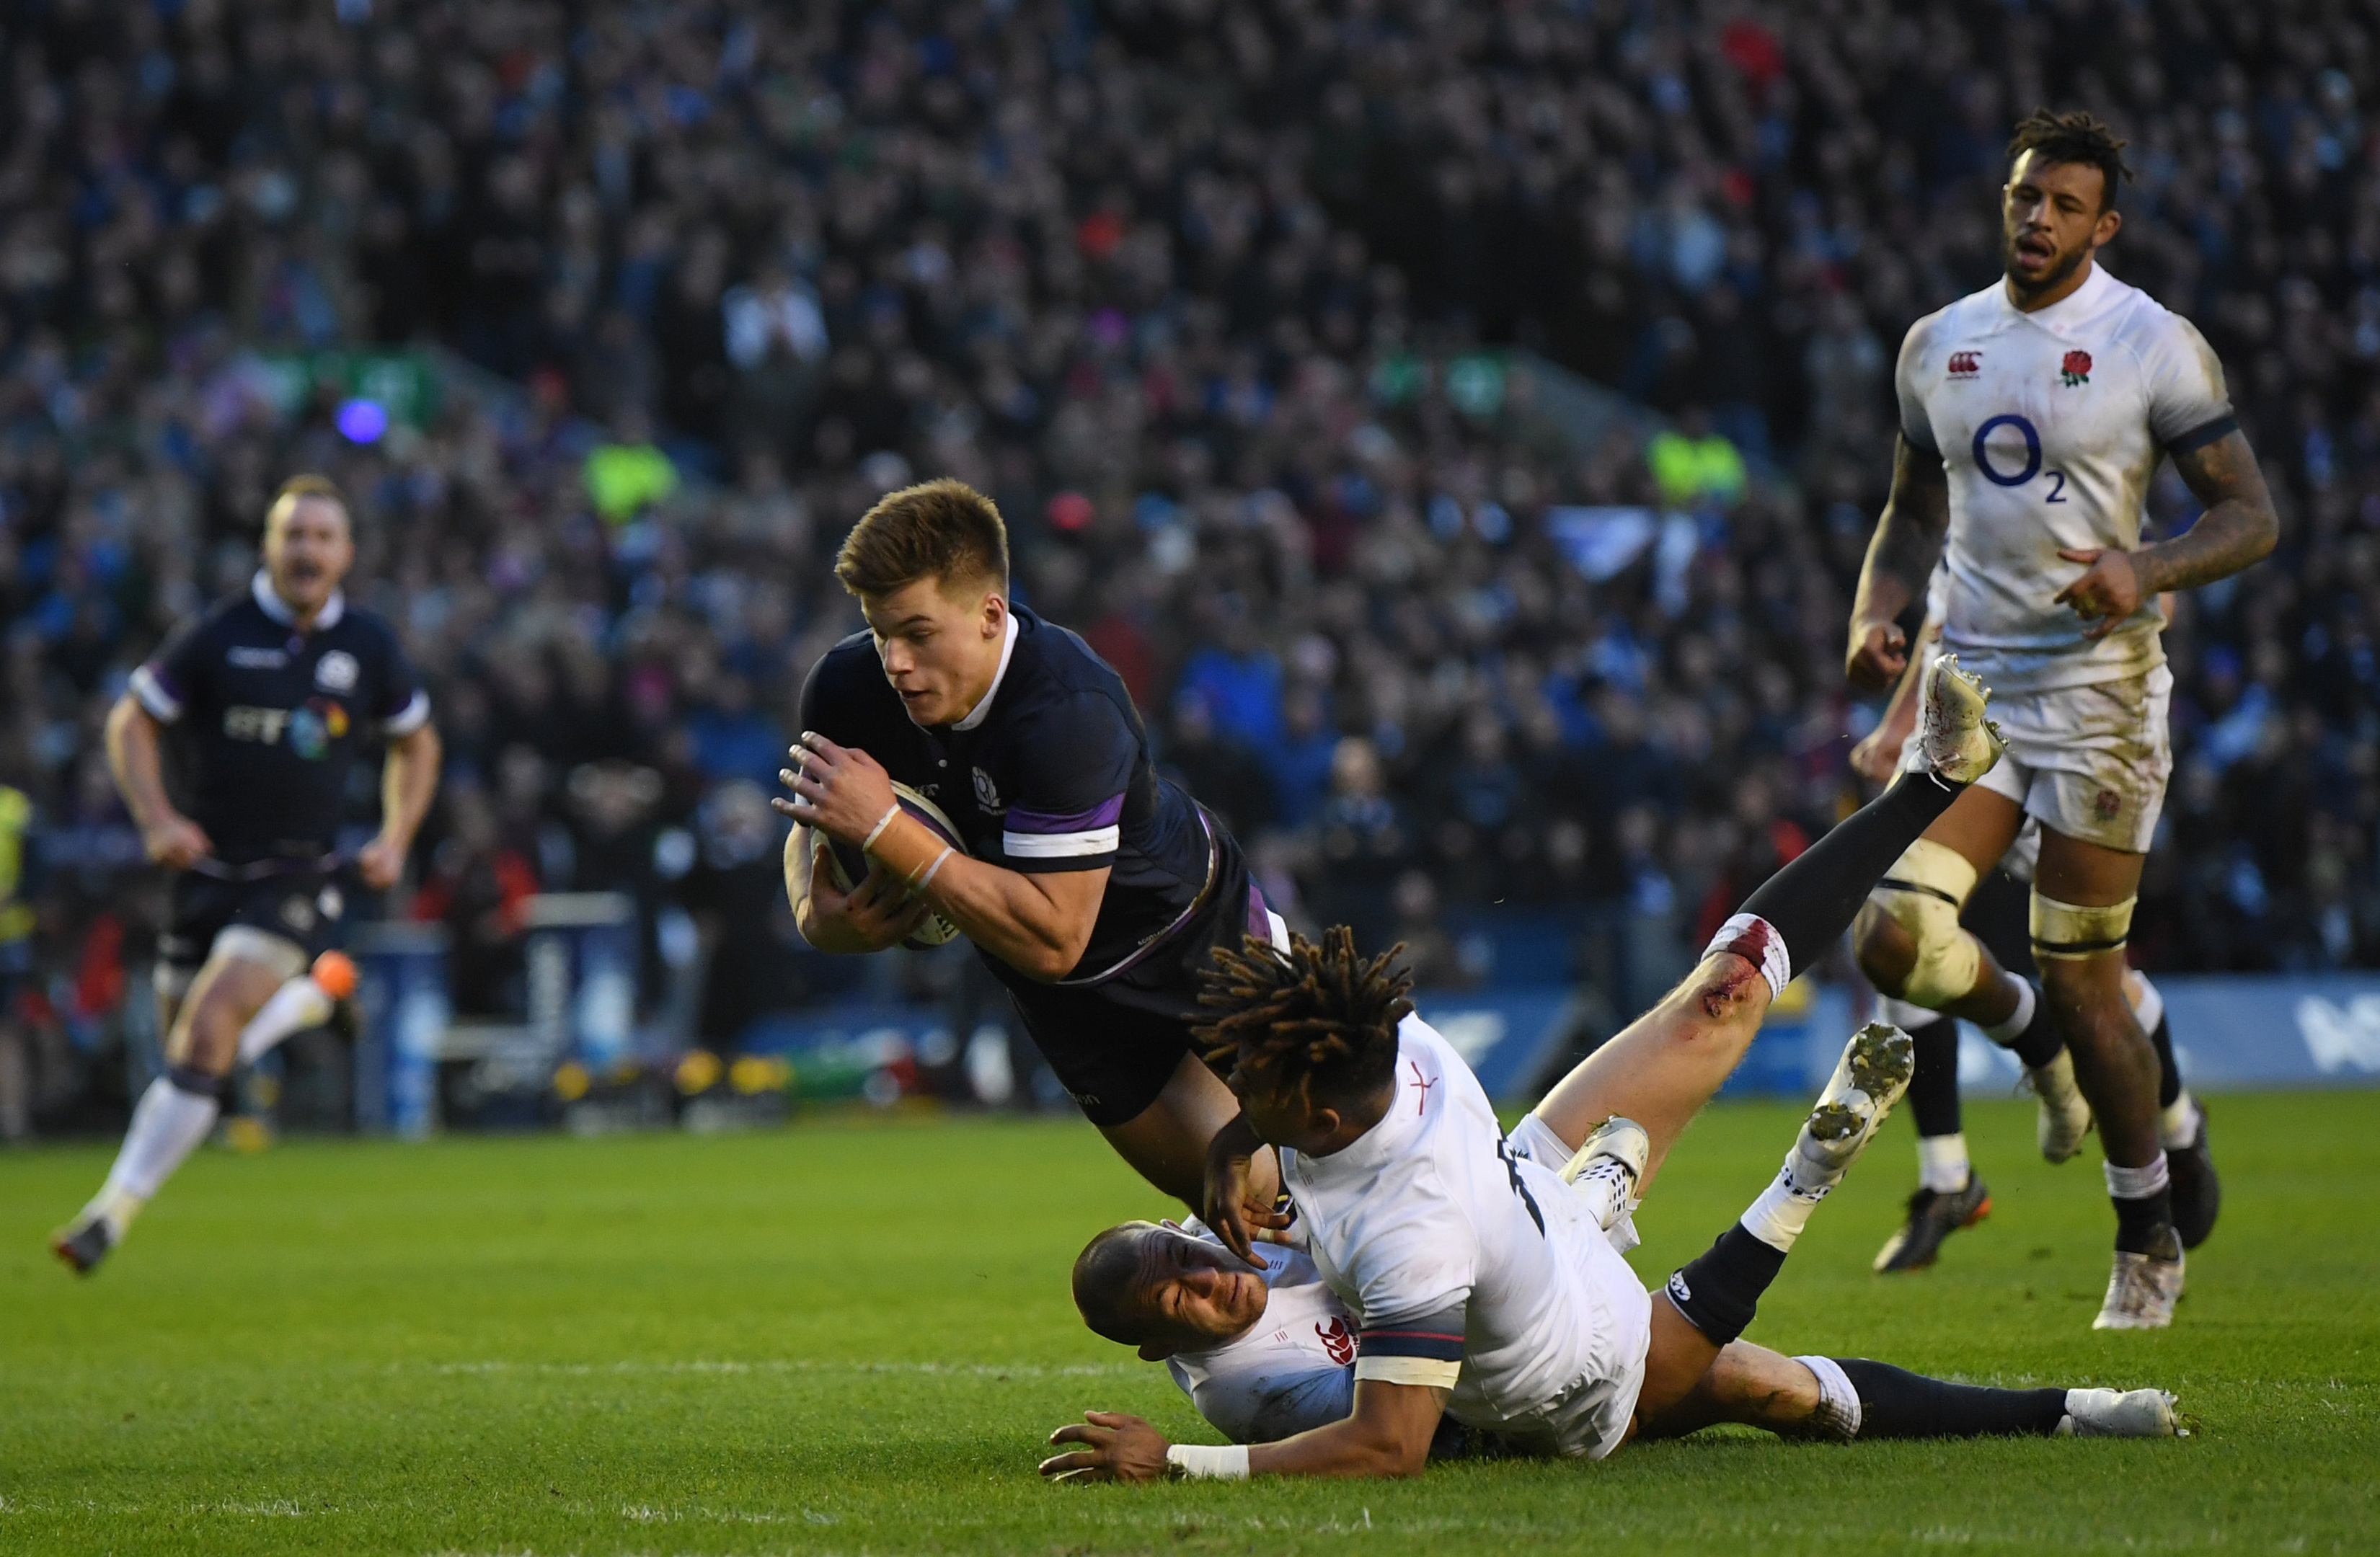 Huw Jones of Scotland has 10 tries in just 16 starts for Scotland.